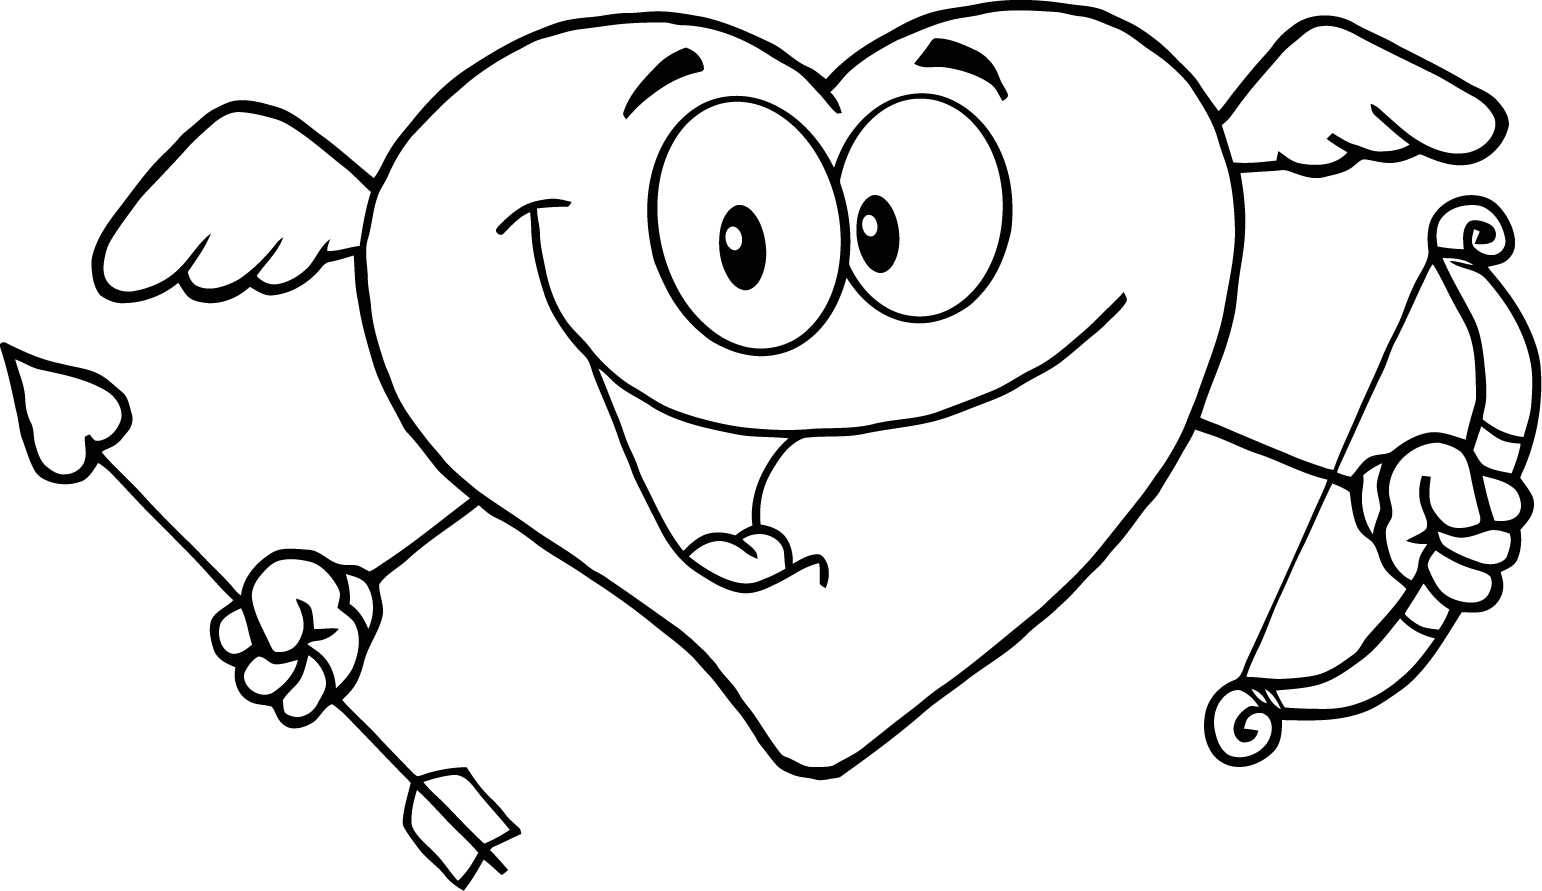 Heart Coloring Pages with Wings Printable